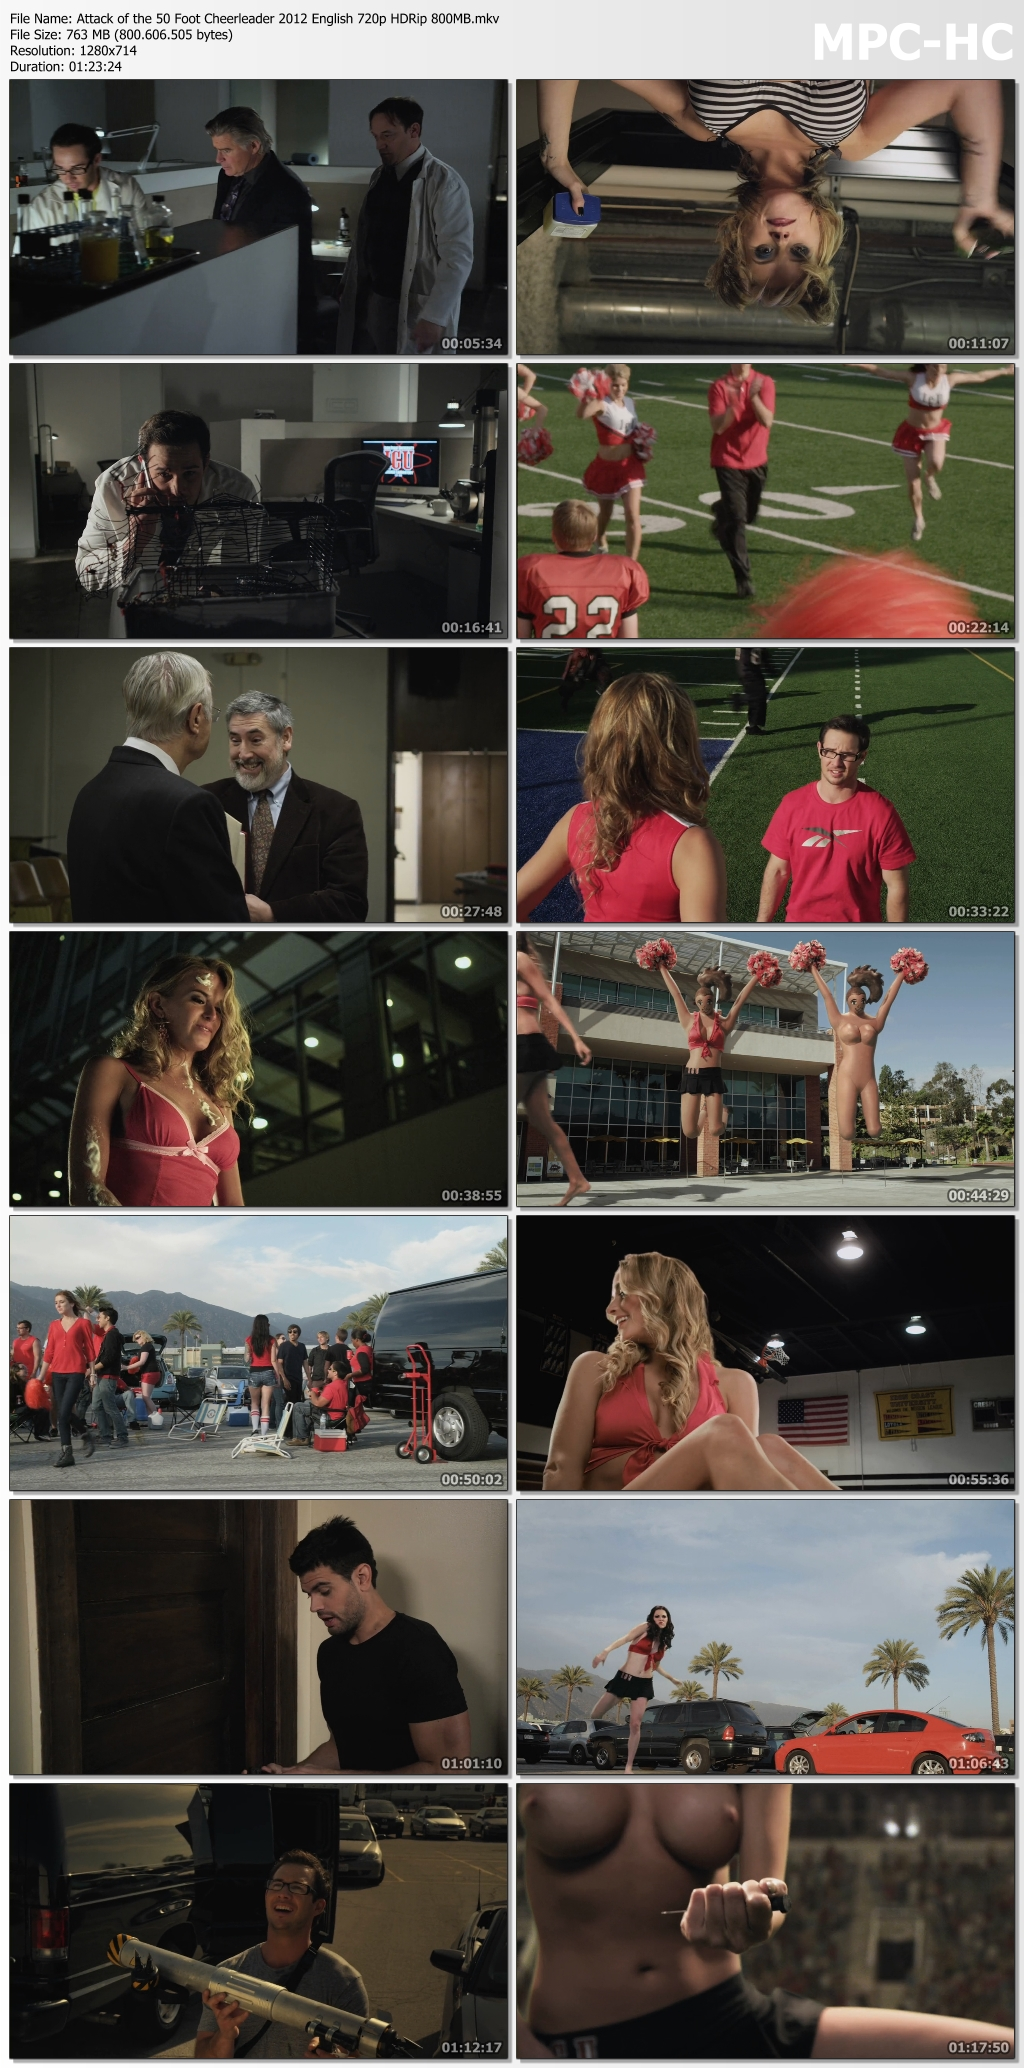 Attack-of-the-50-Foot-Cheerleader-2012-English-720p-HDRip-800-MB-mkv-thumbs